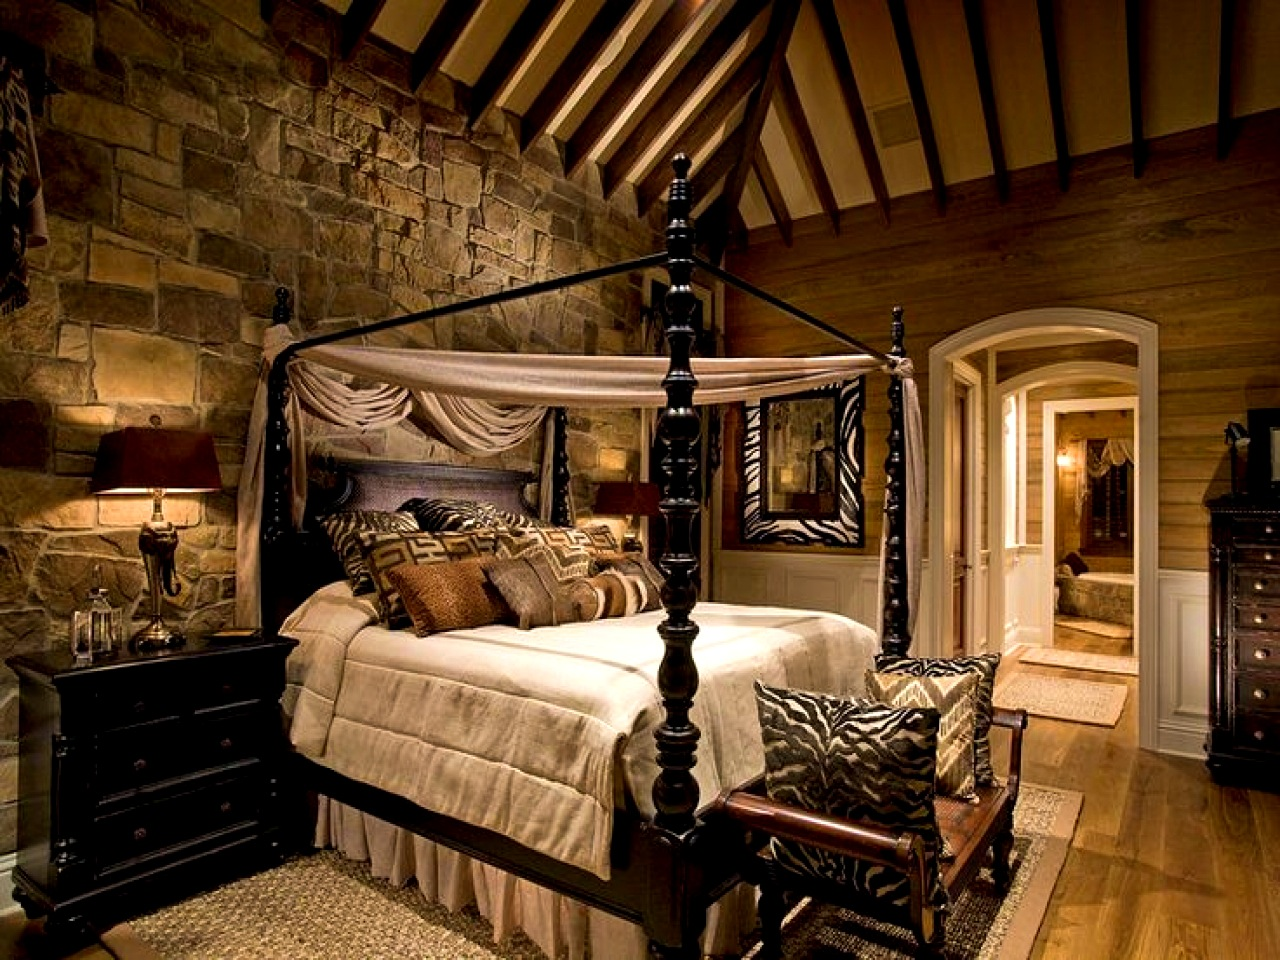 Rustic bedroom decorating ideas a guide to inspire and for Northwoods decor